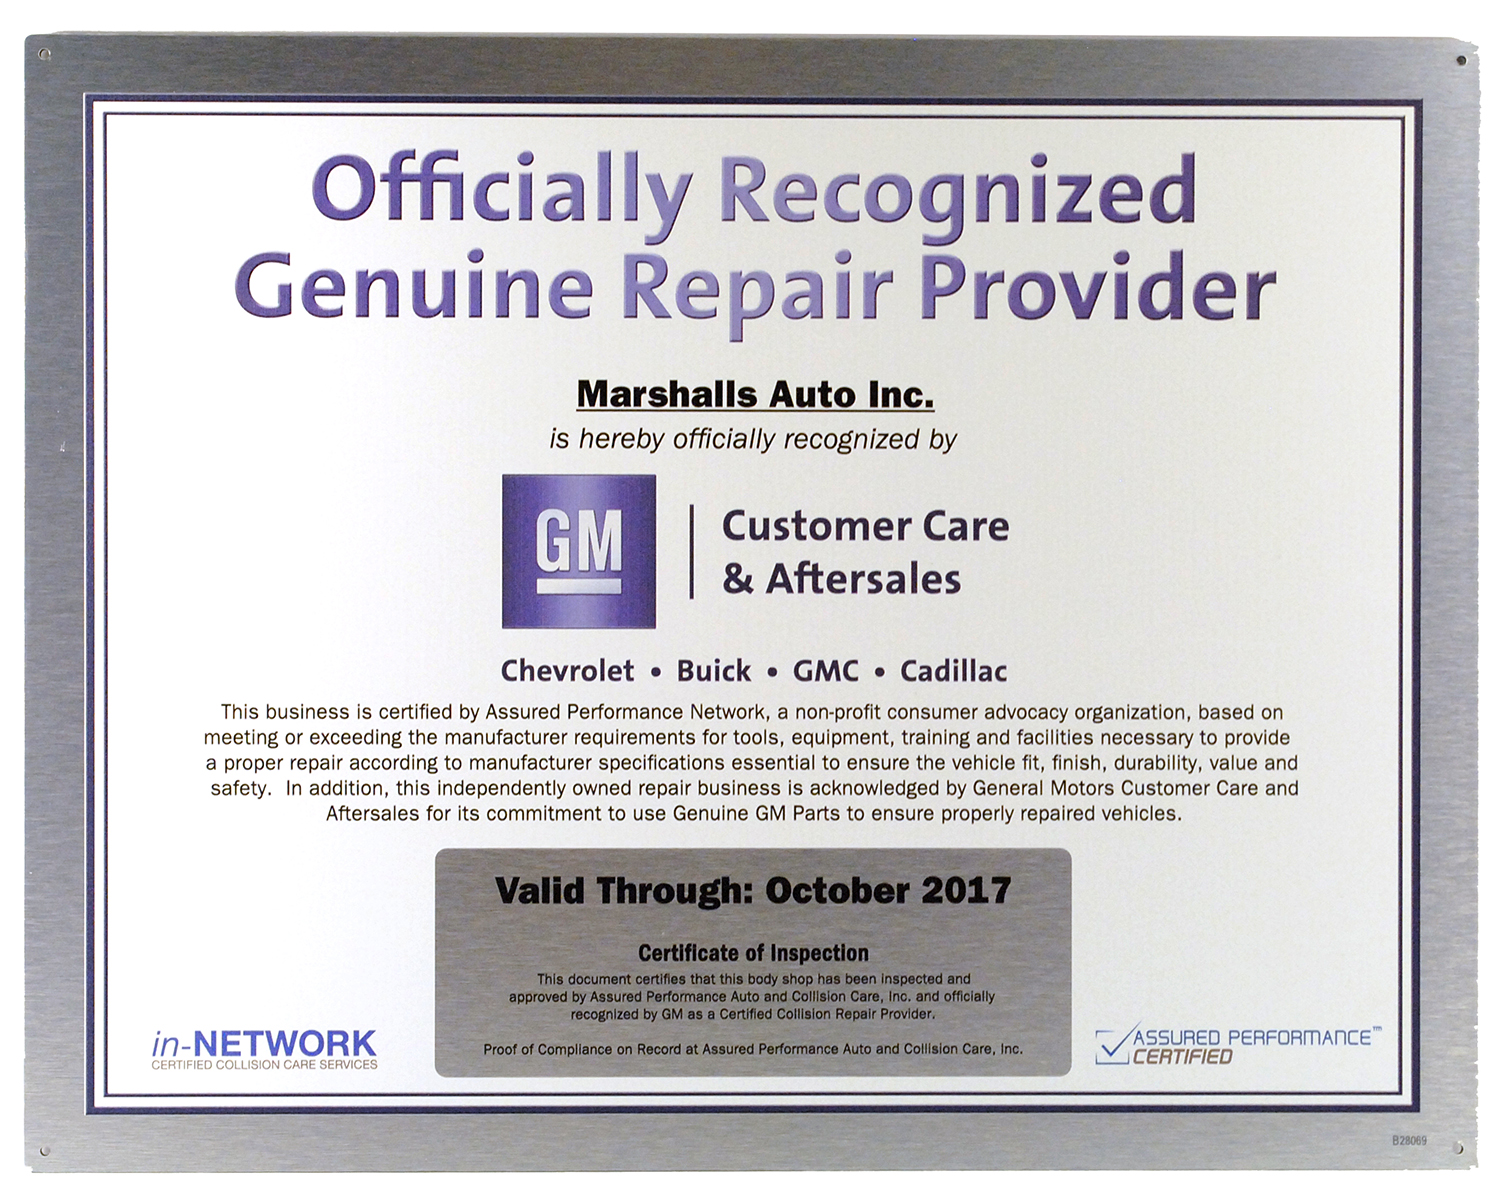 GM Genuine Repair Provider